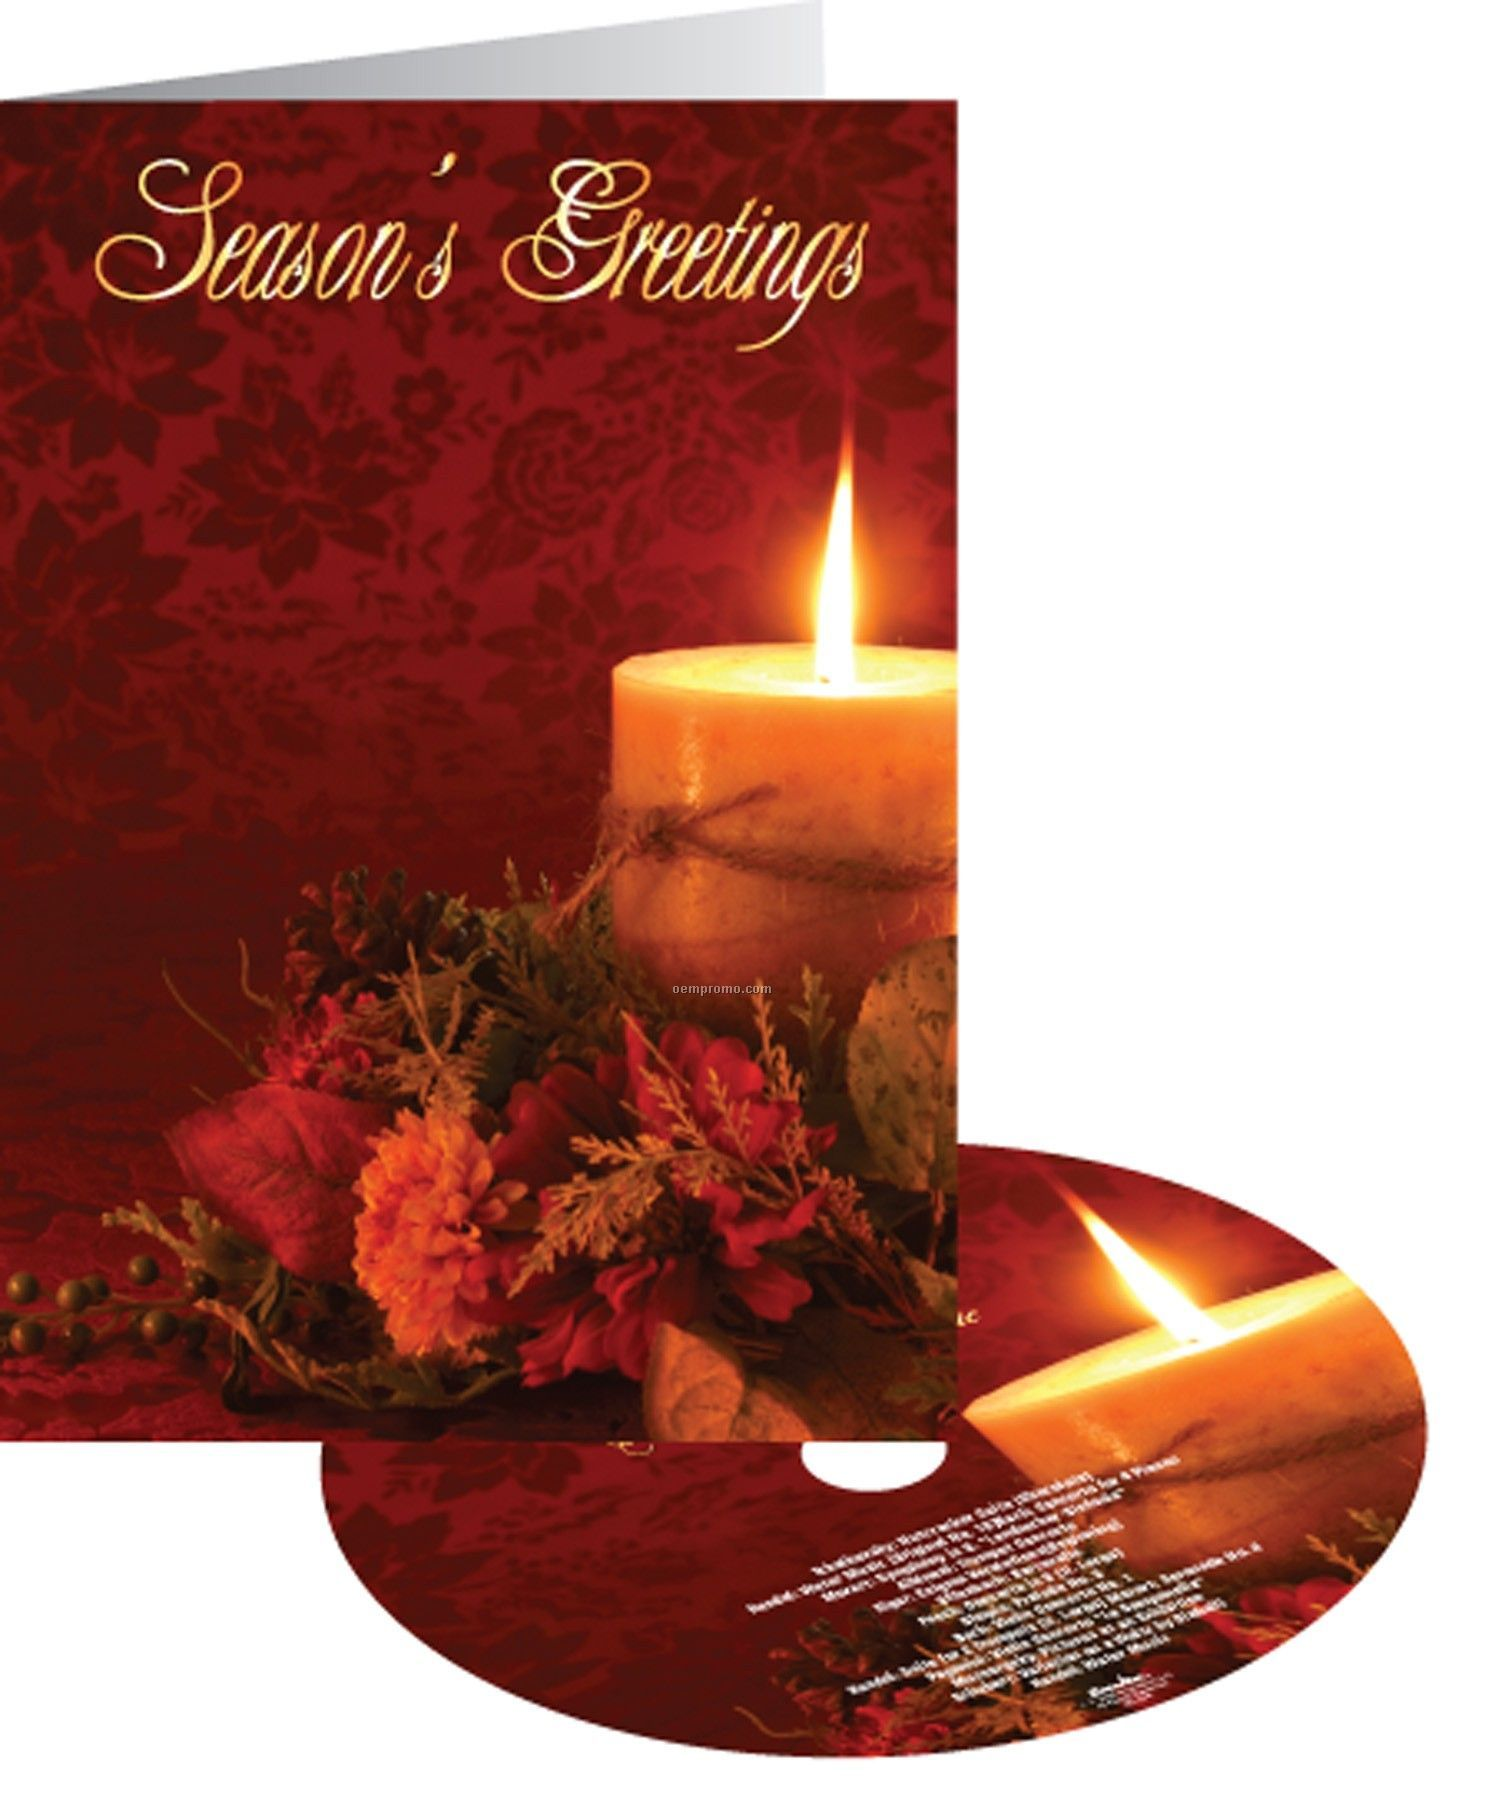 Floral Candle Season's Greetings Holiday Card With Matching CD